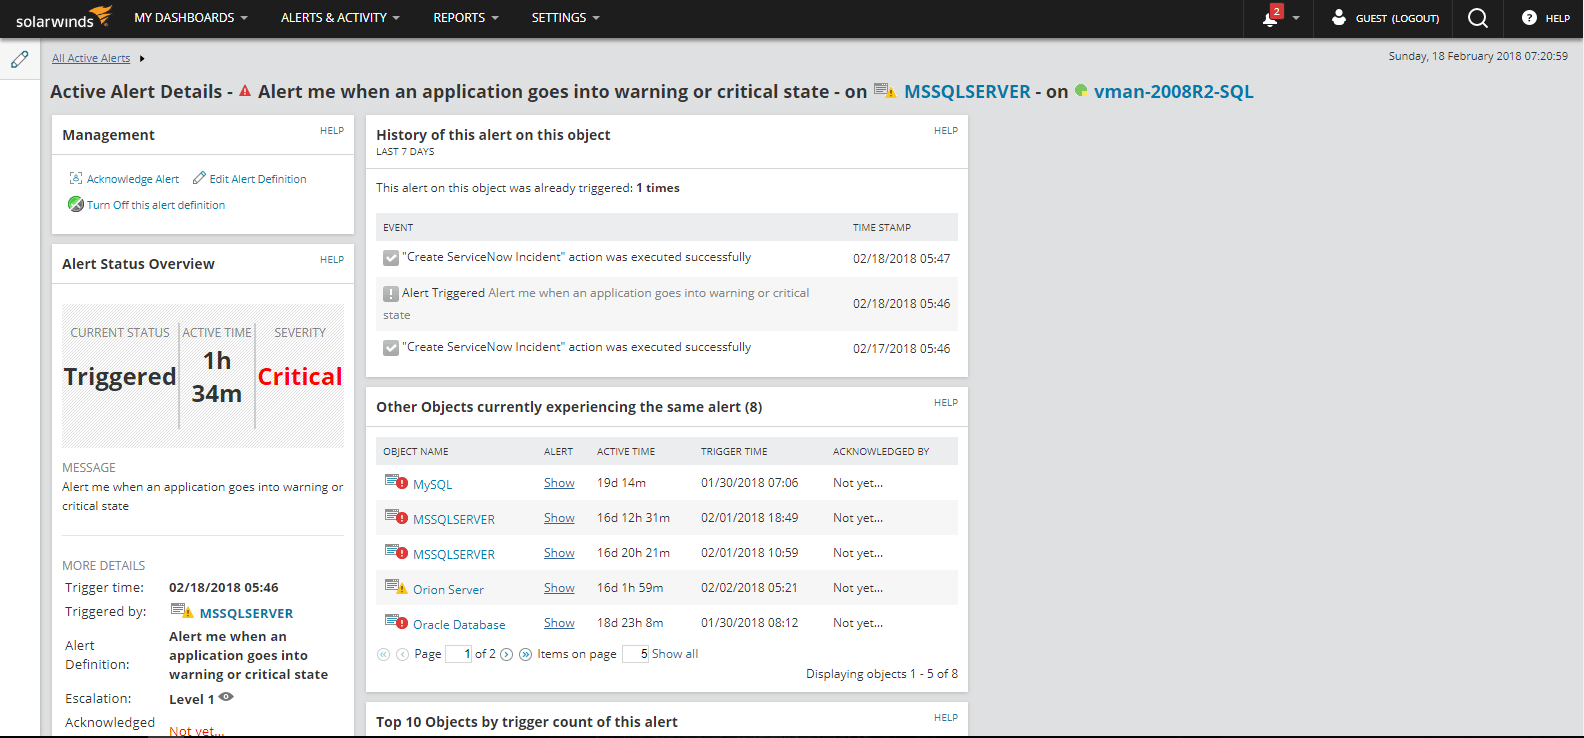 SolarWinds Orion NPM Active Alert Details